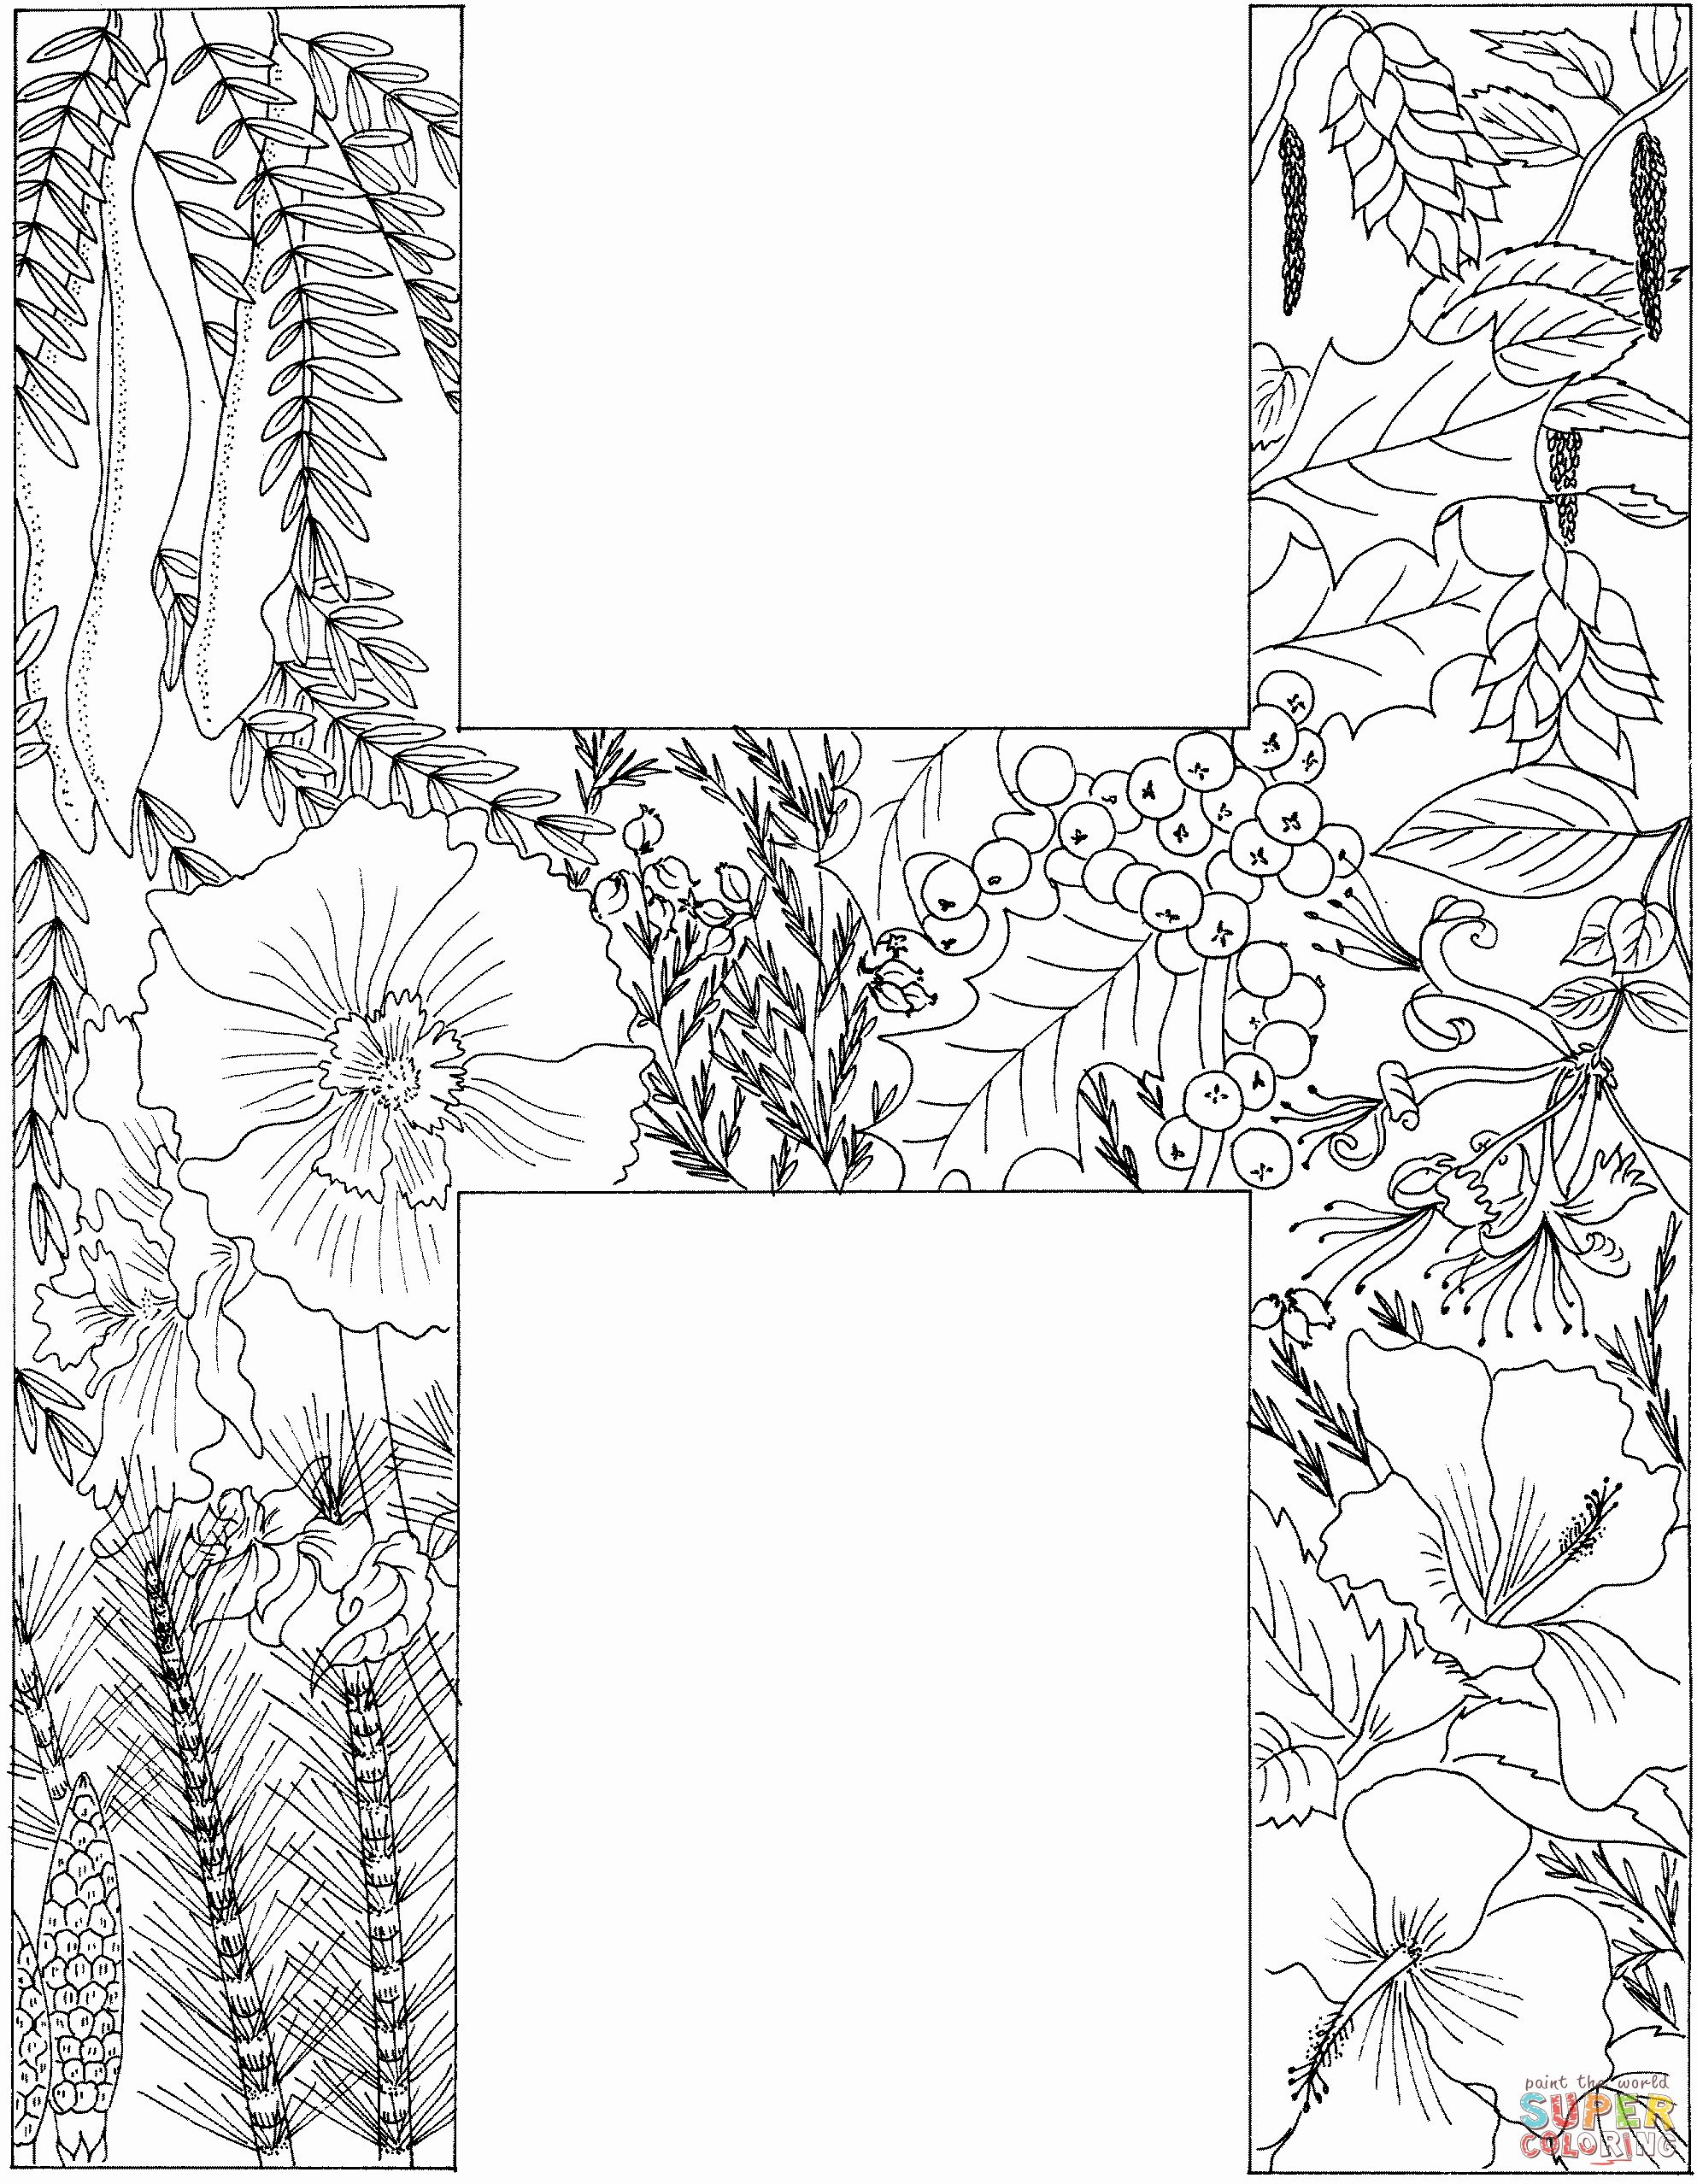 Letter H Coloring Page In 2020 Alphabet Coloring Pages Coloring